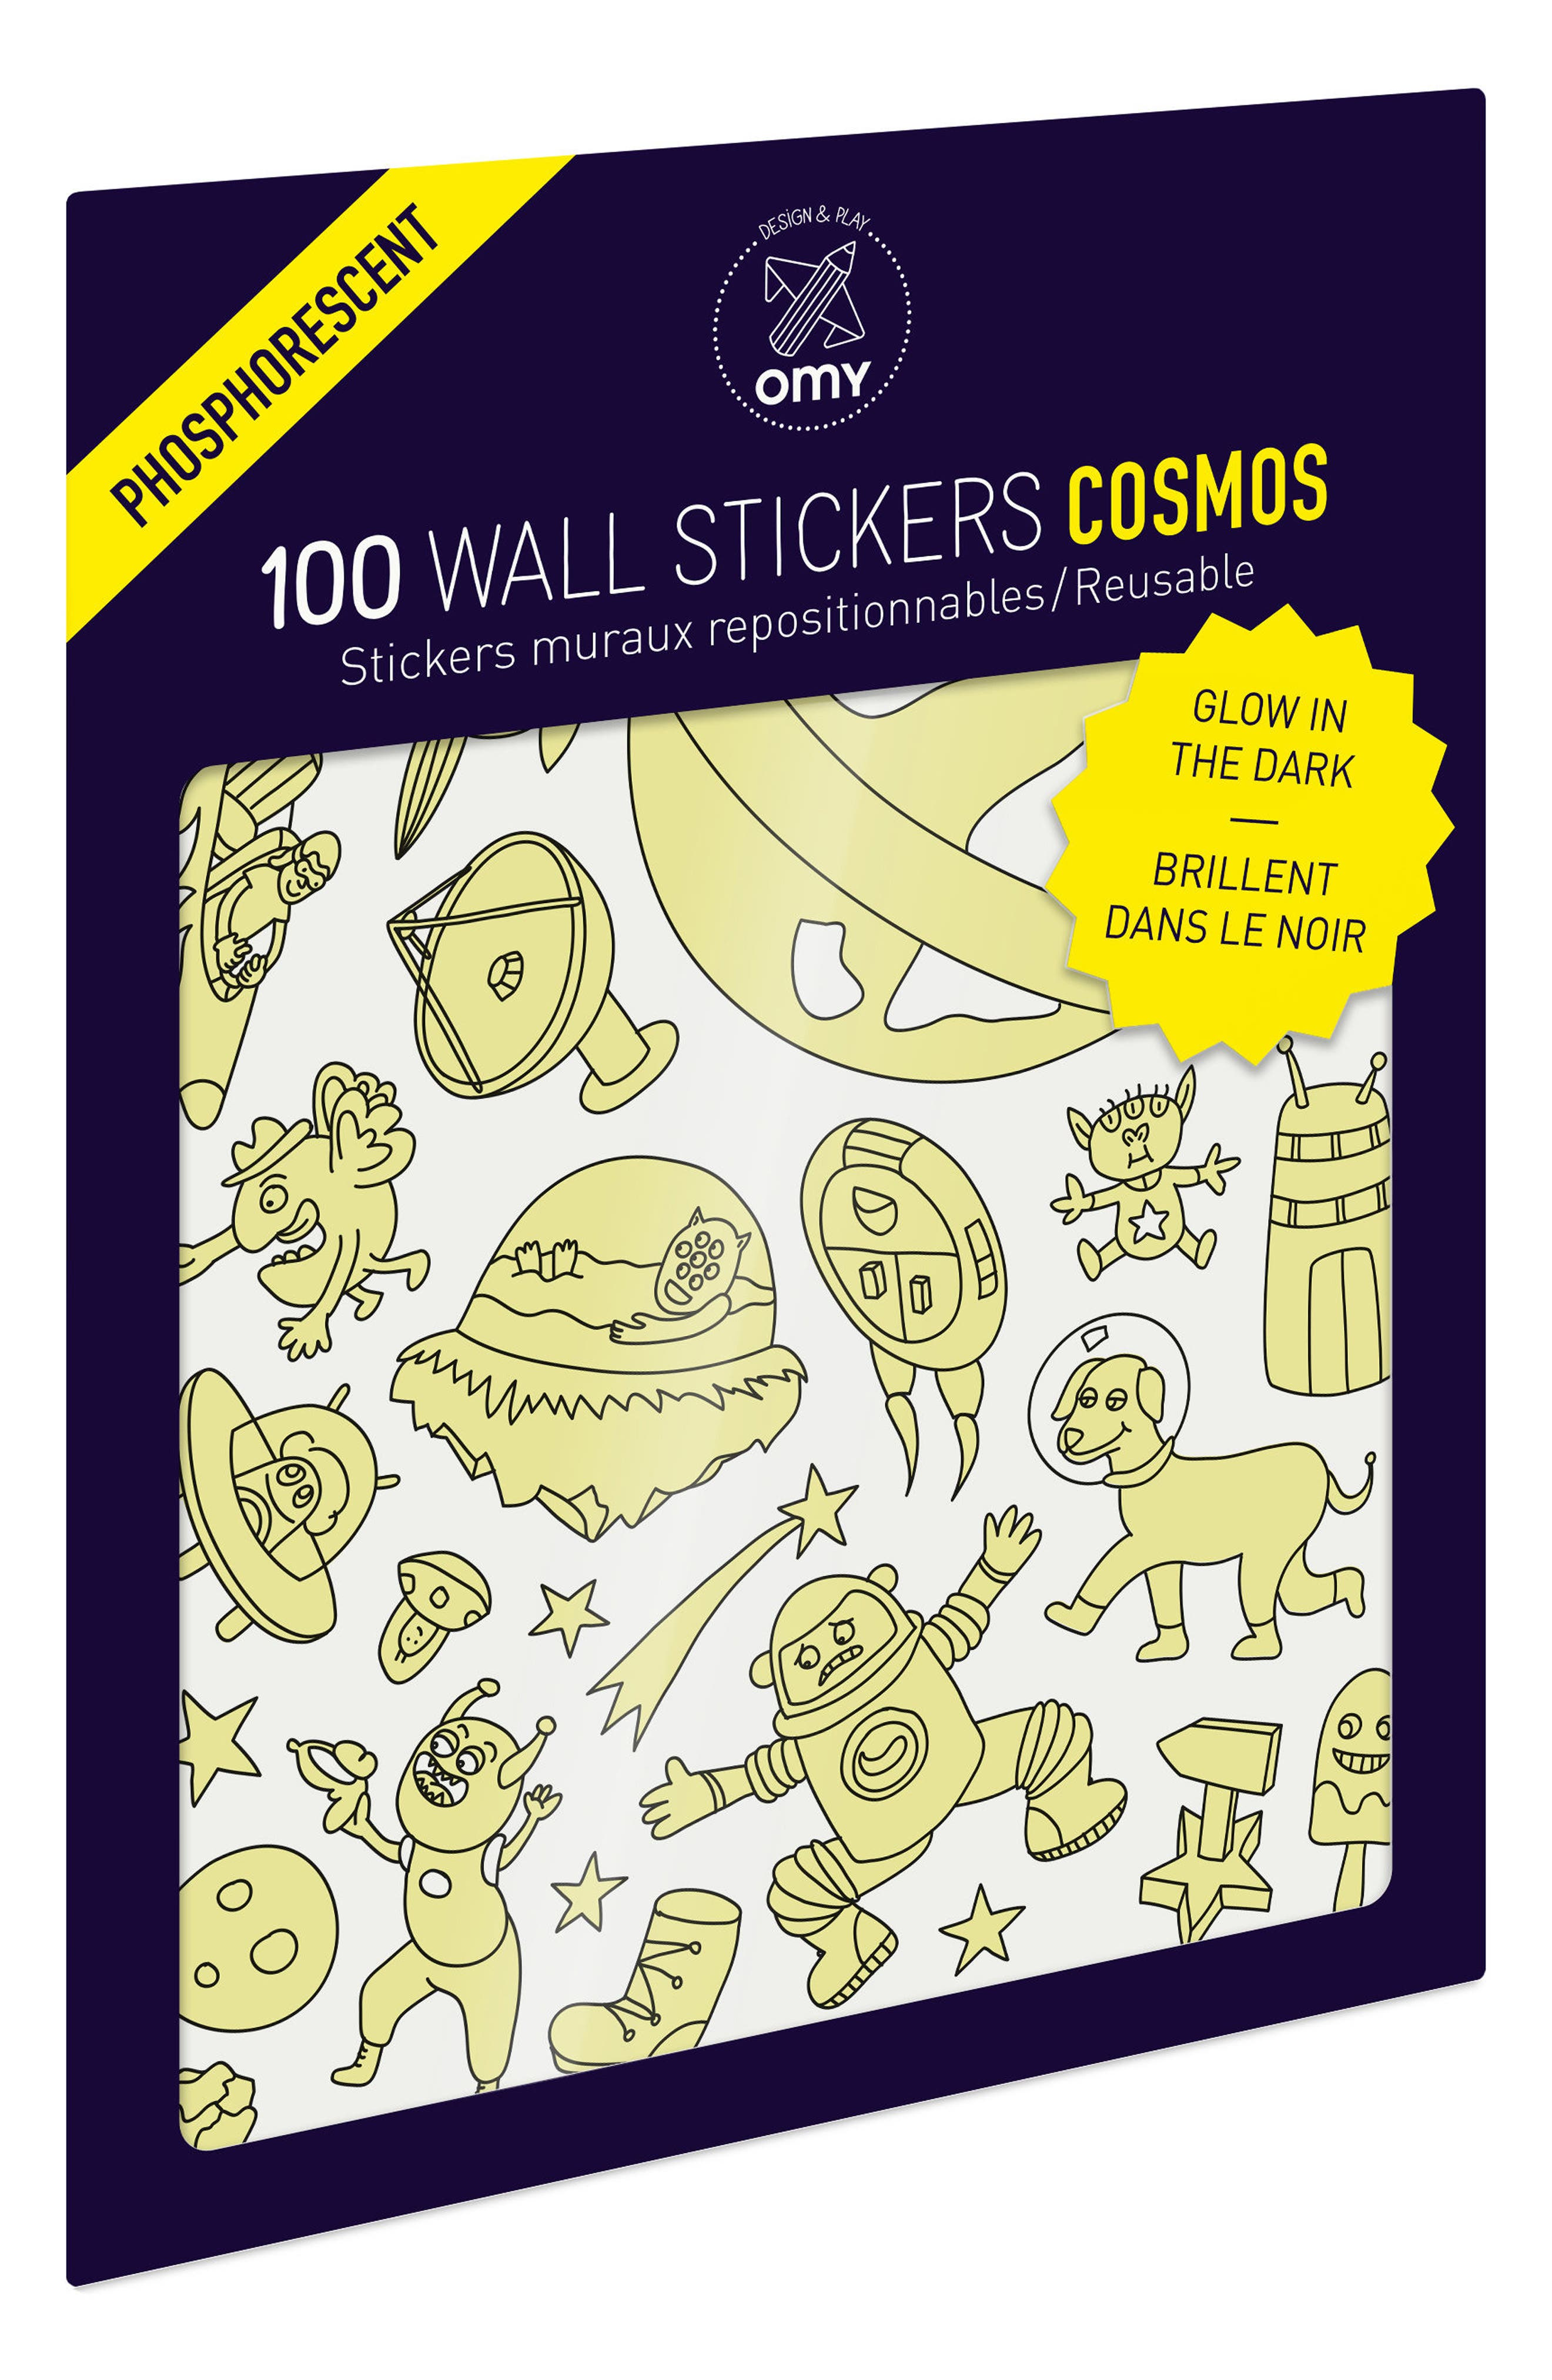 Set of 100 Cosmos Glow in the Dark Wall Stickers,                             Main thumbnail 1, color,                             100